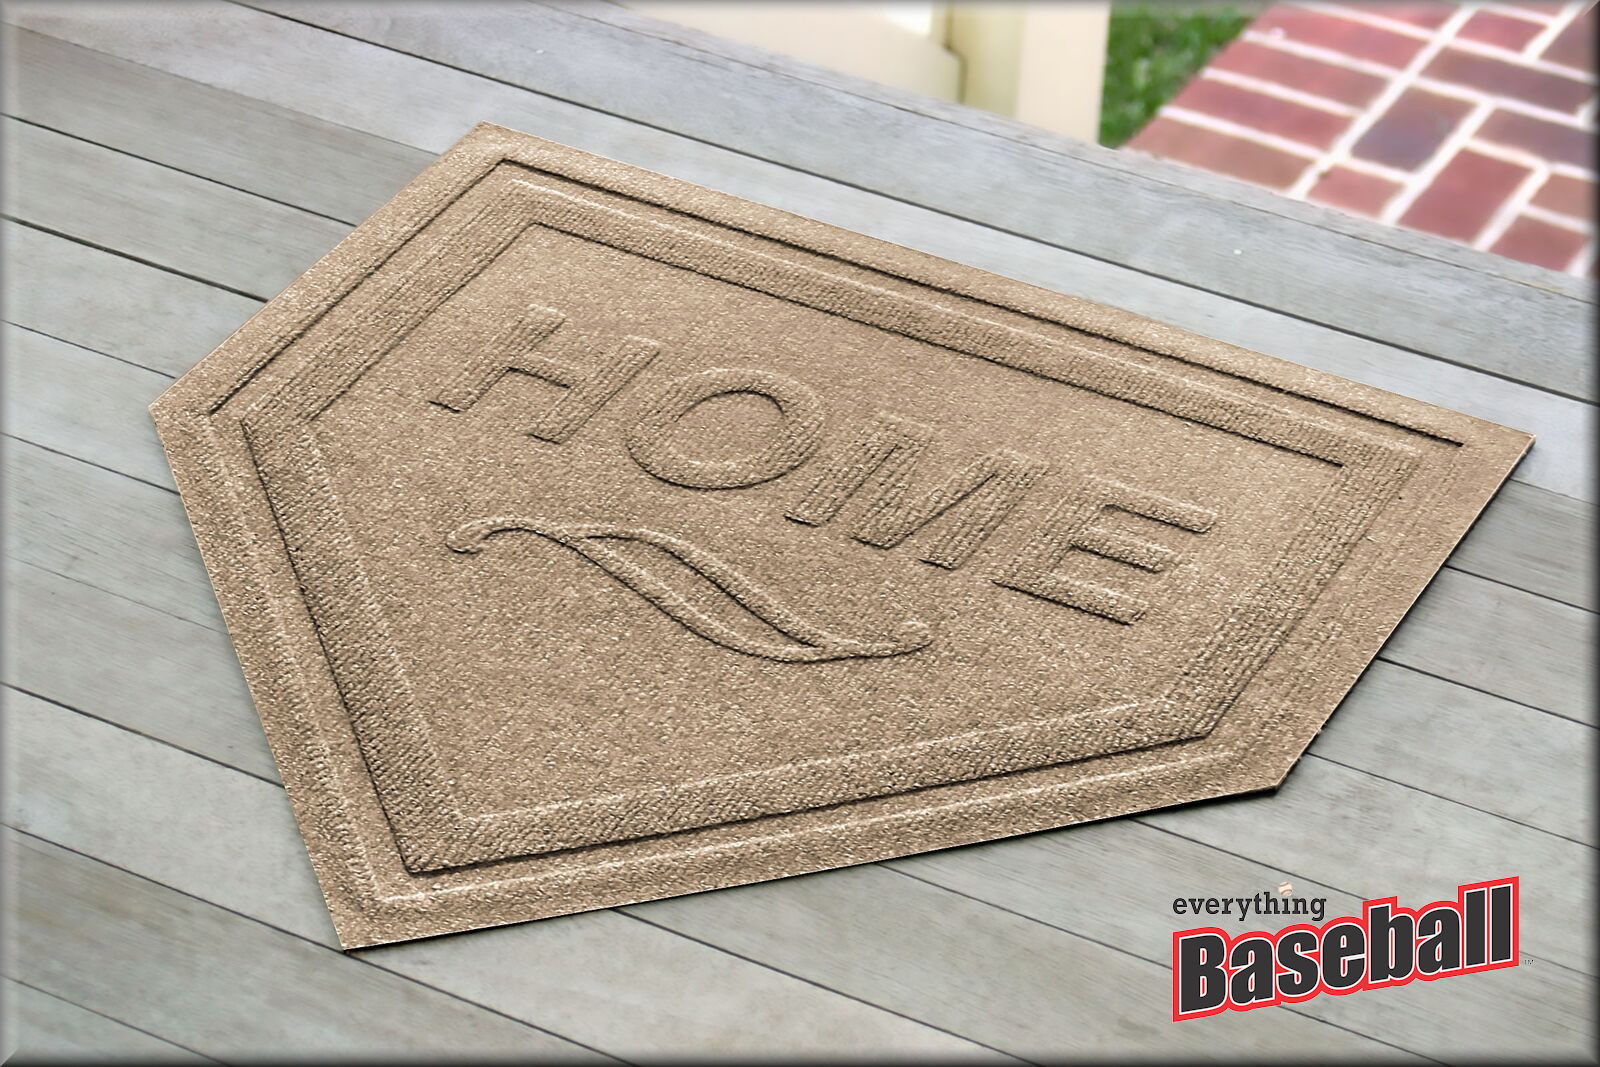 Baseball Home Plate Shaped Welcome Mat<br>CHOOSE FROM 19 COLORS!